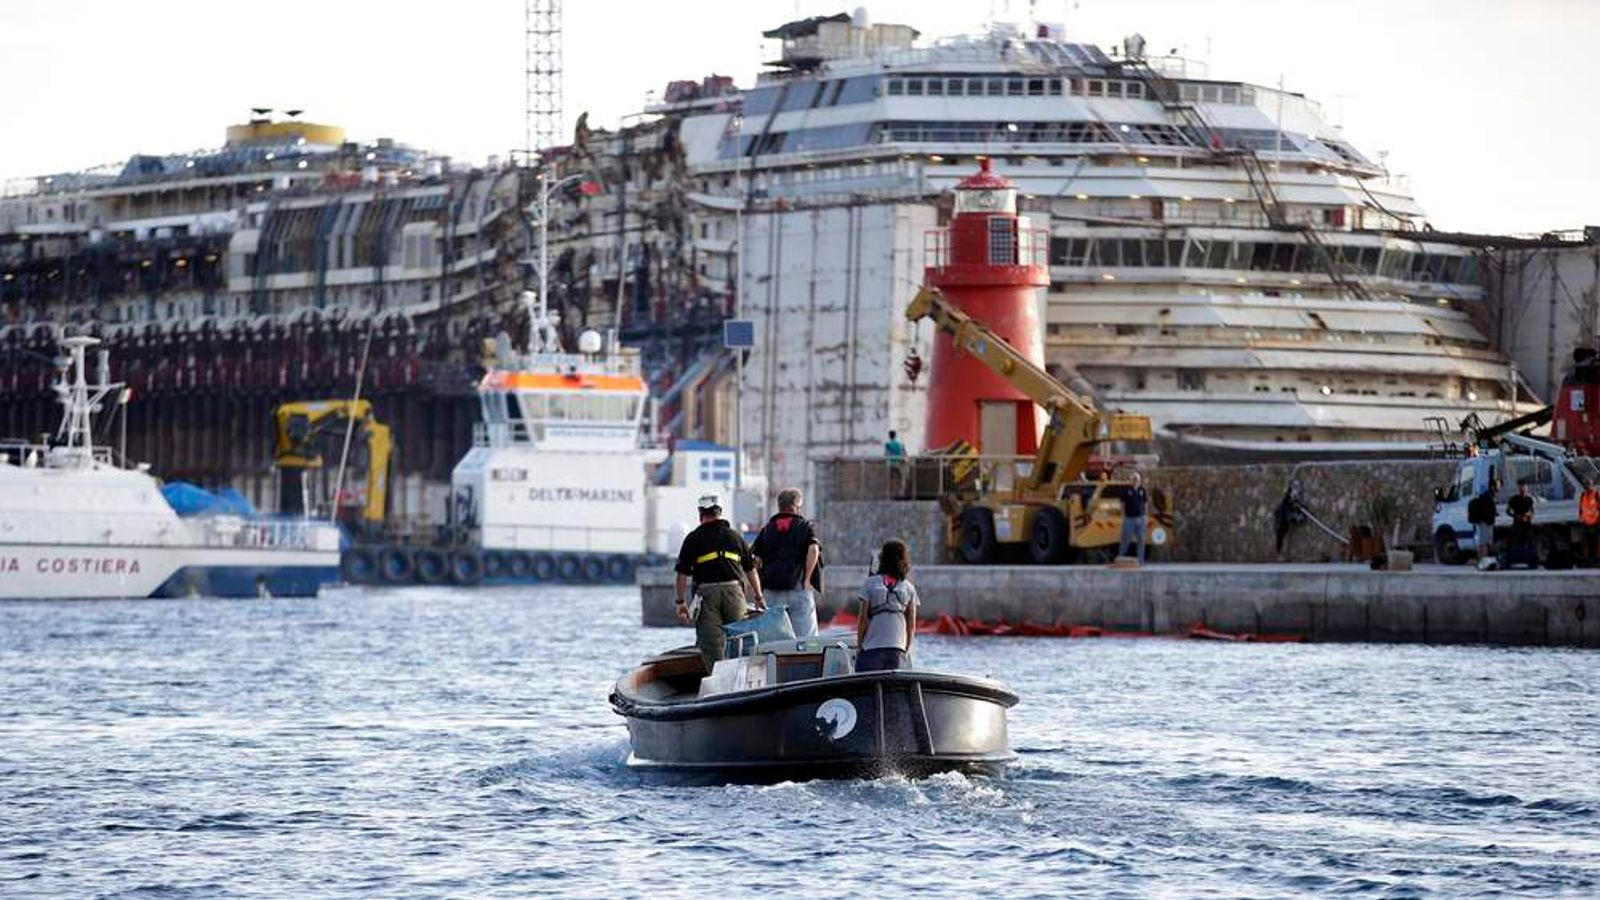 Costa Concordia pictured during the refloat operation